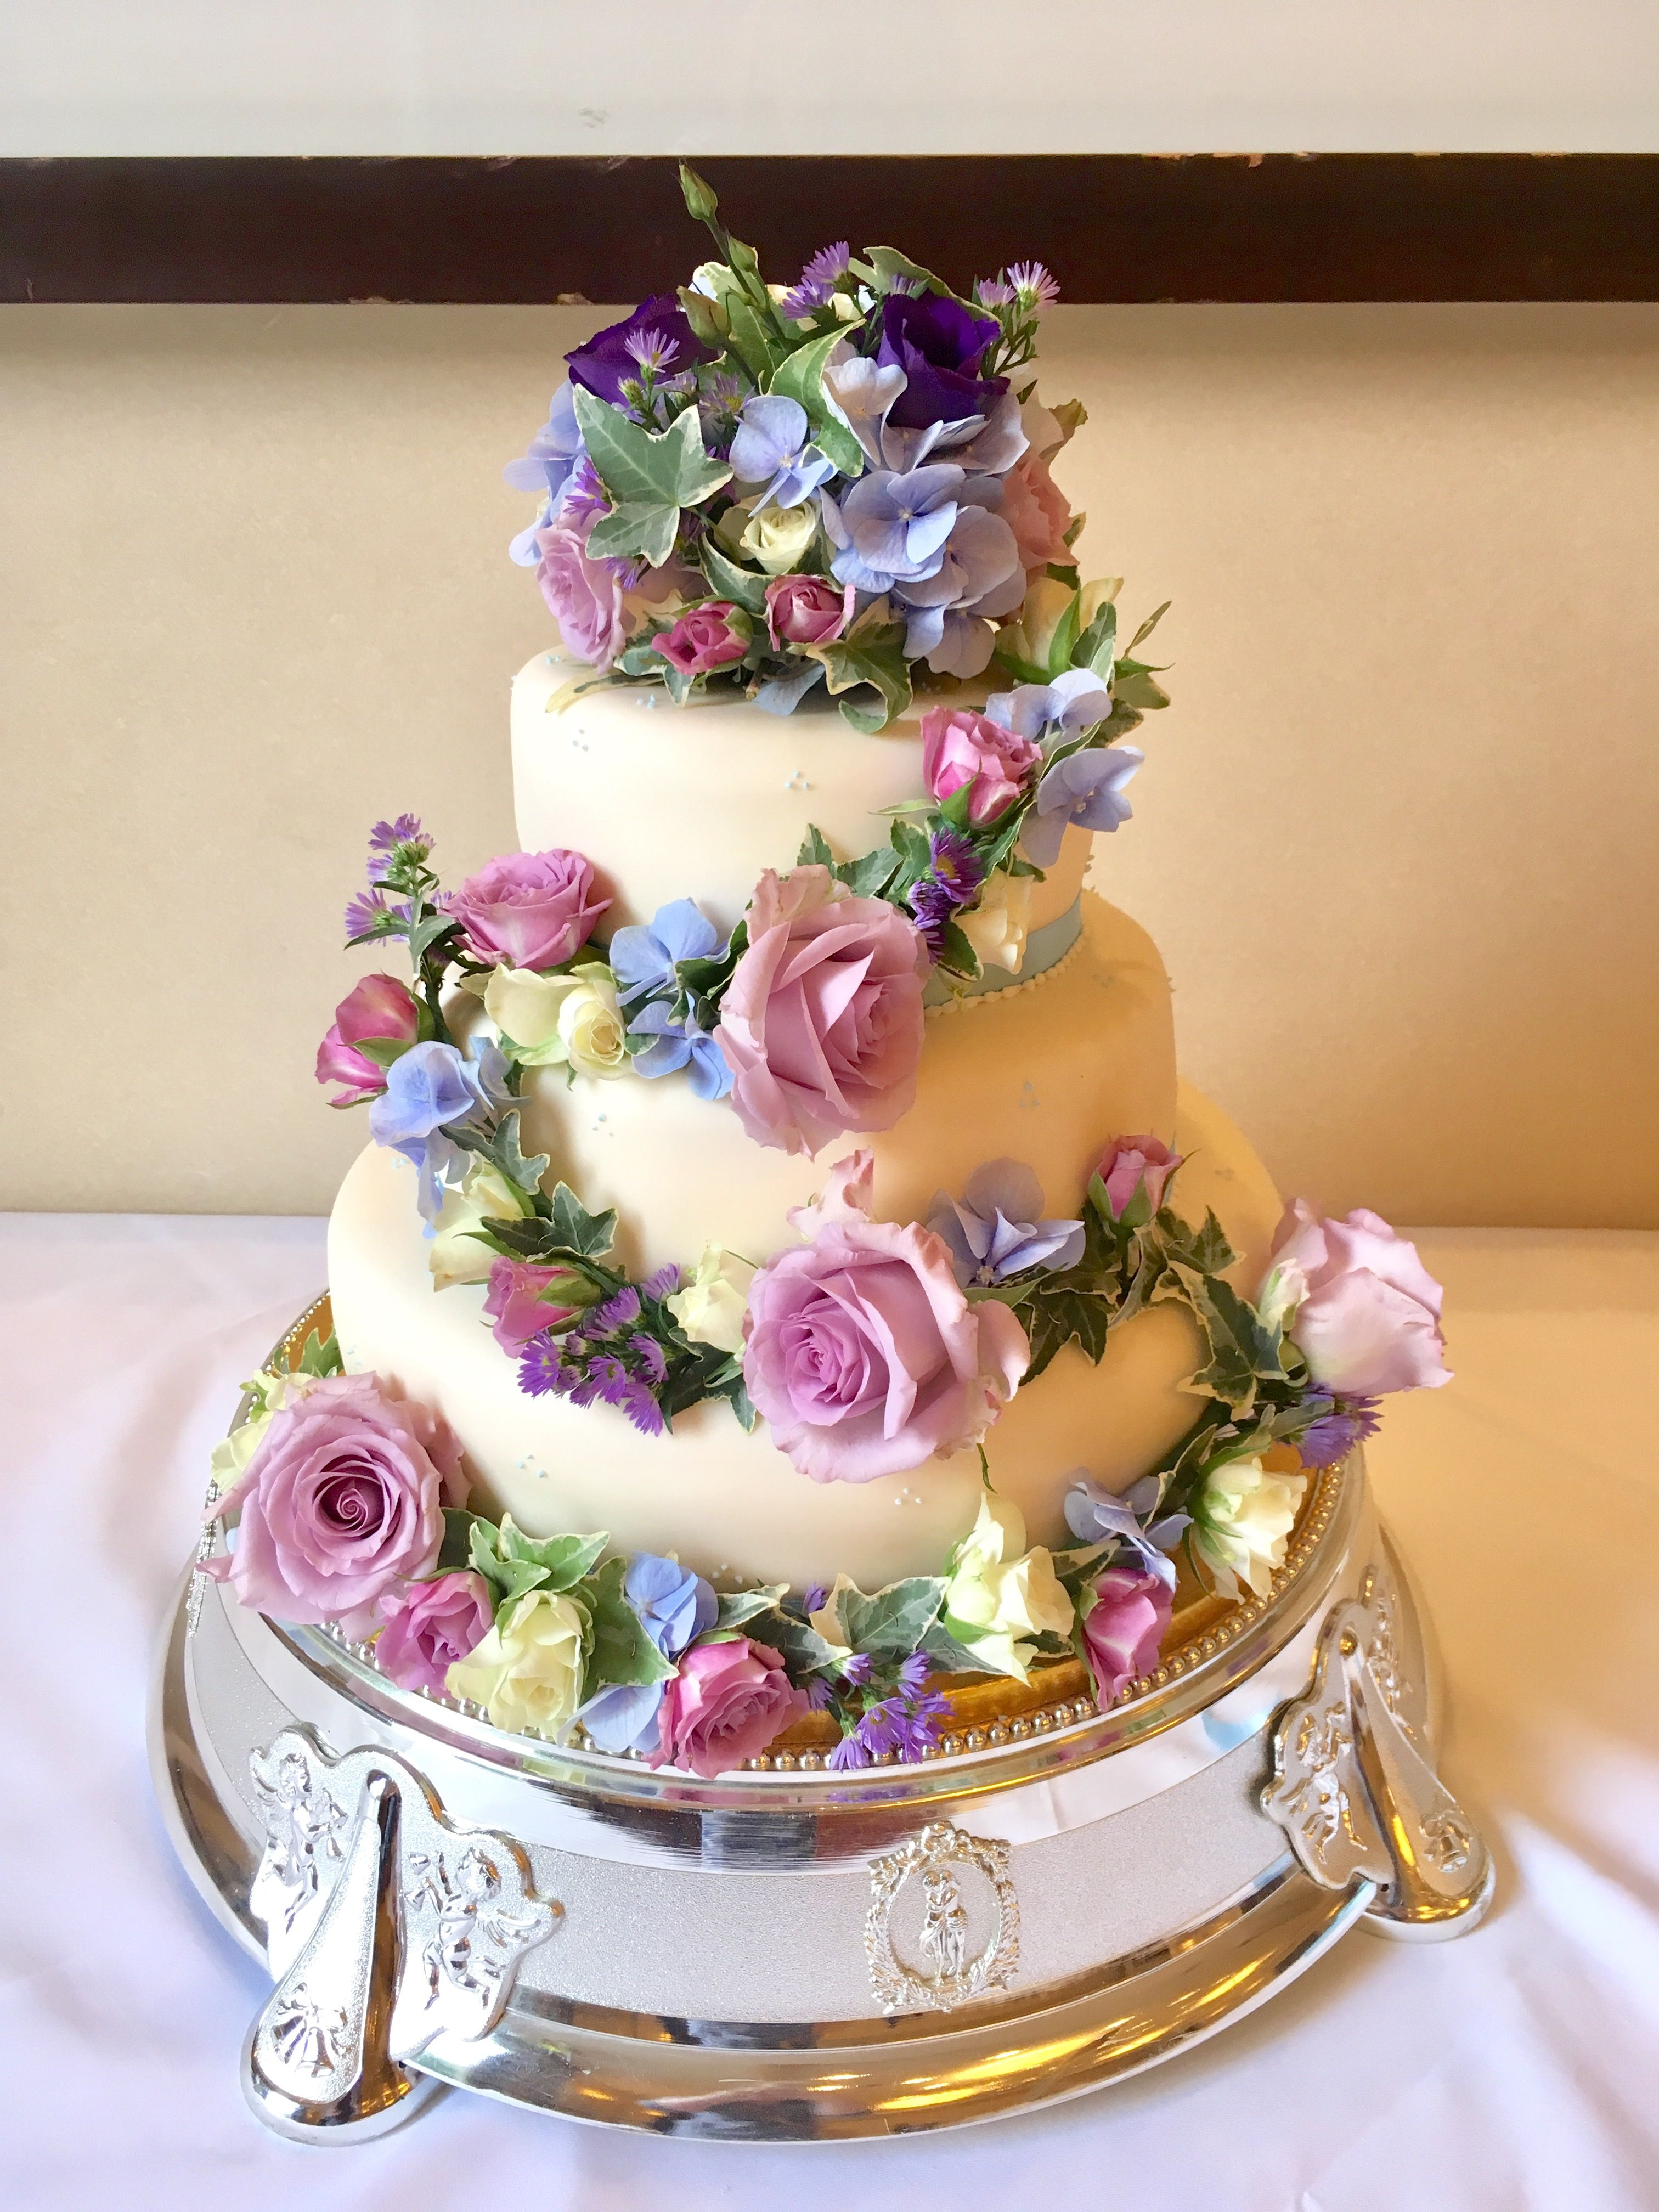 Light Blue And Lilac Wedding Cake Flowers Wedding Cakes Lilac Wedding Cakes With Flowers Wedding Cake Fresh Flowers